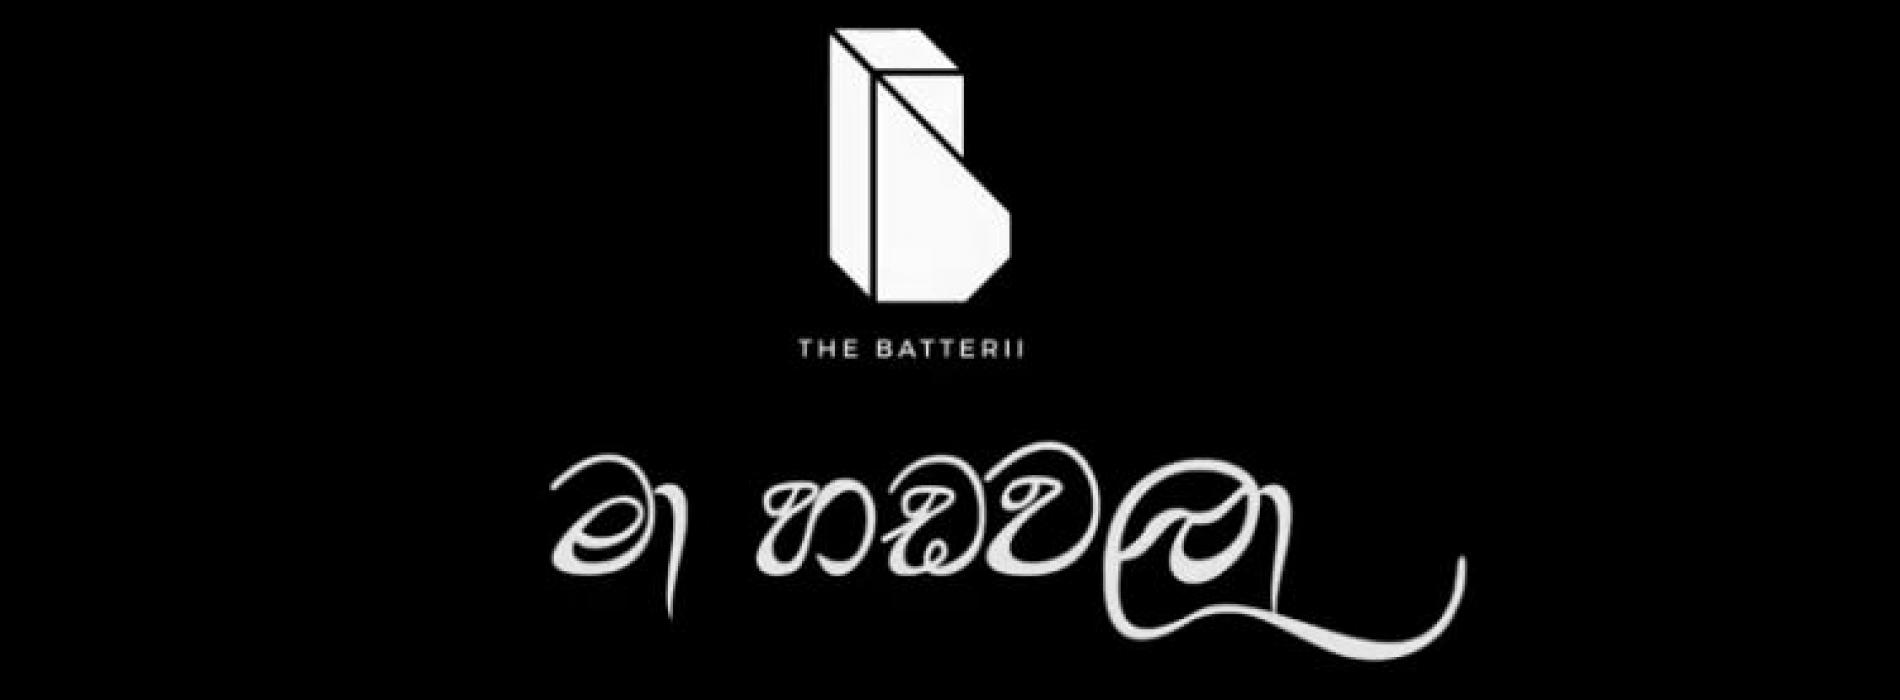 THE BATTERII – Ma Handawala මා හඬවලා (Cover)